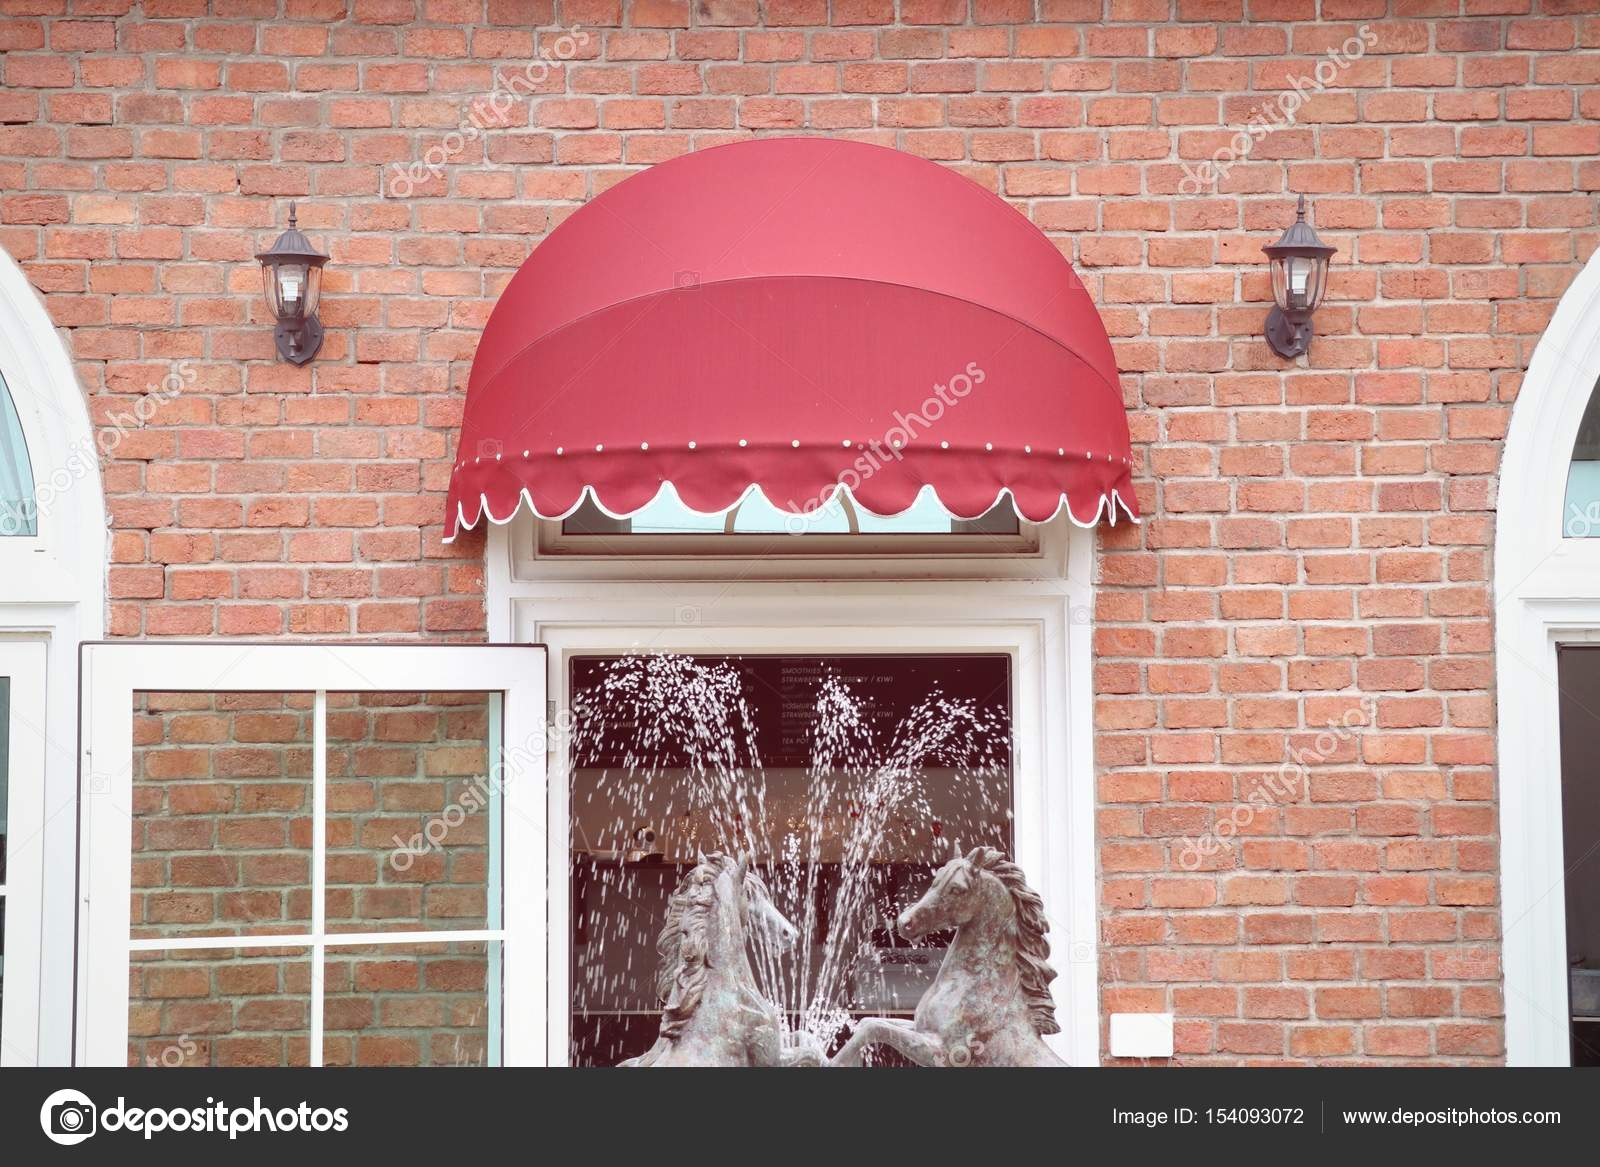 Red Awning On Building Vintage Stock Photo C Oilslo 154093072